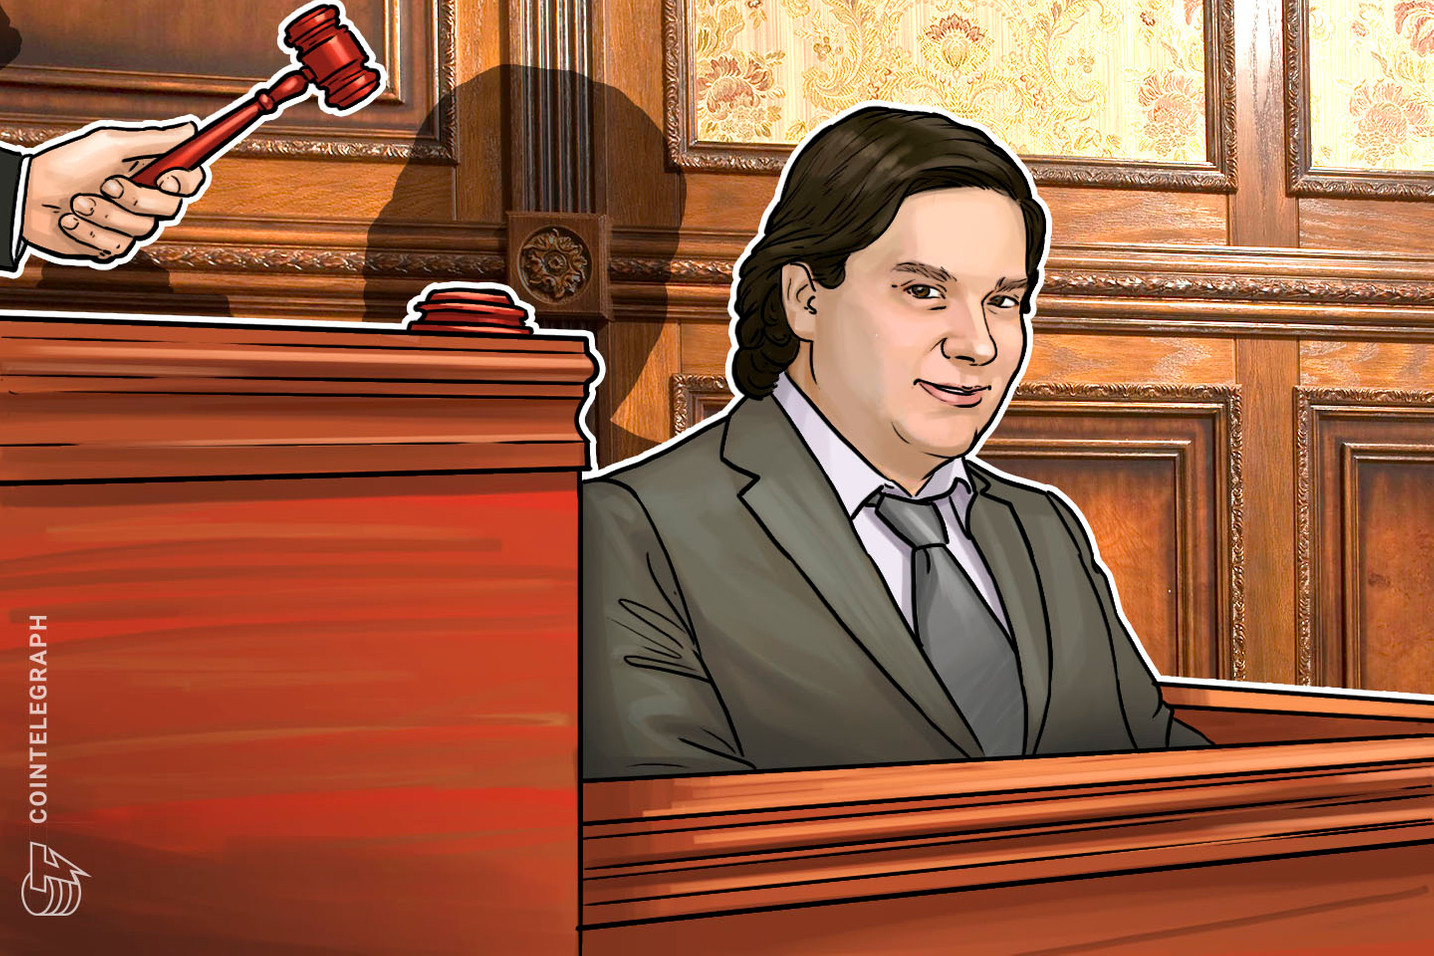 US Court Denies Ex-Mt. Gox CEO Karpeles' Motion to Stay Lawsuit Against Him